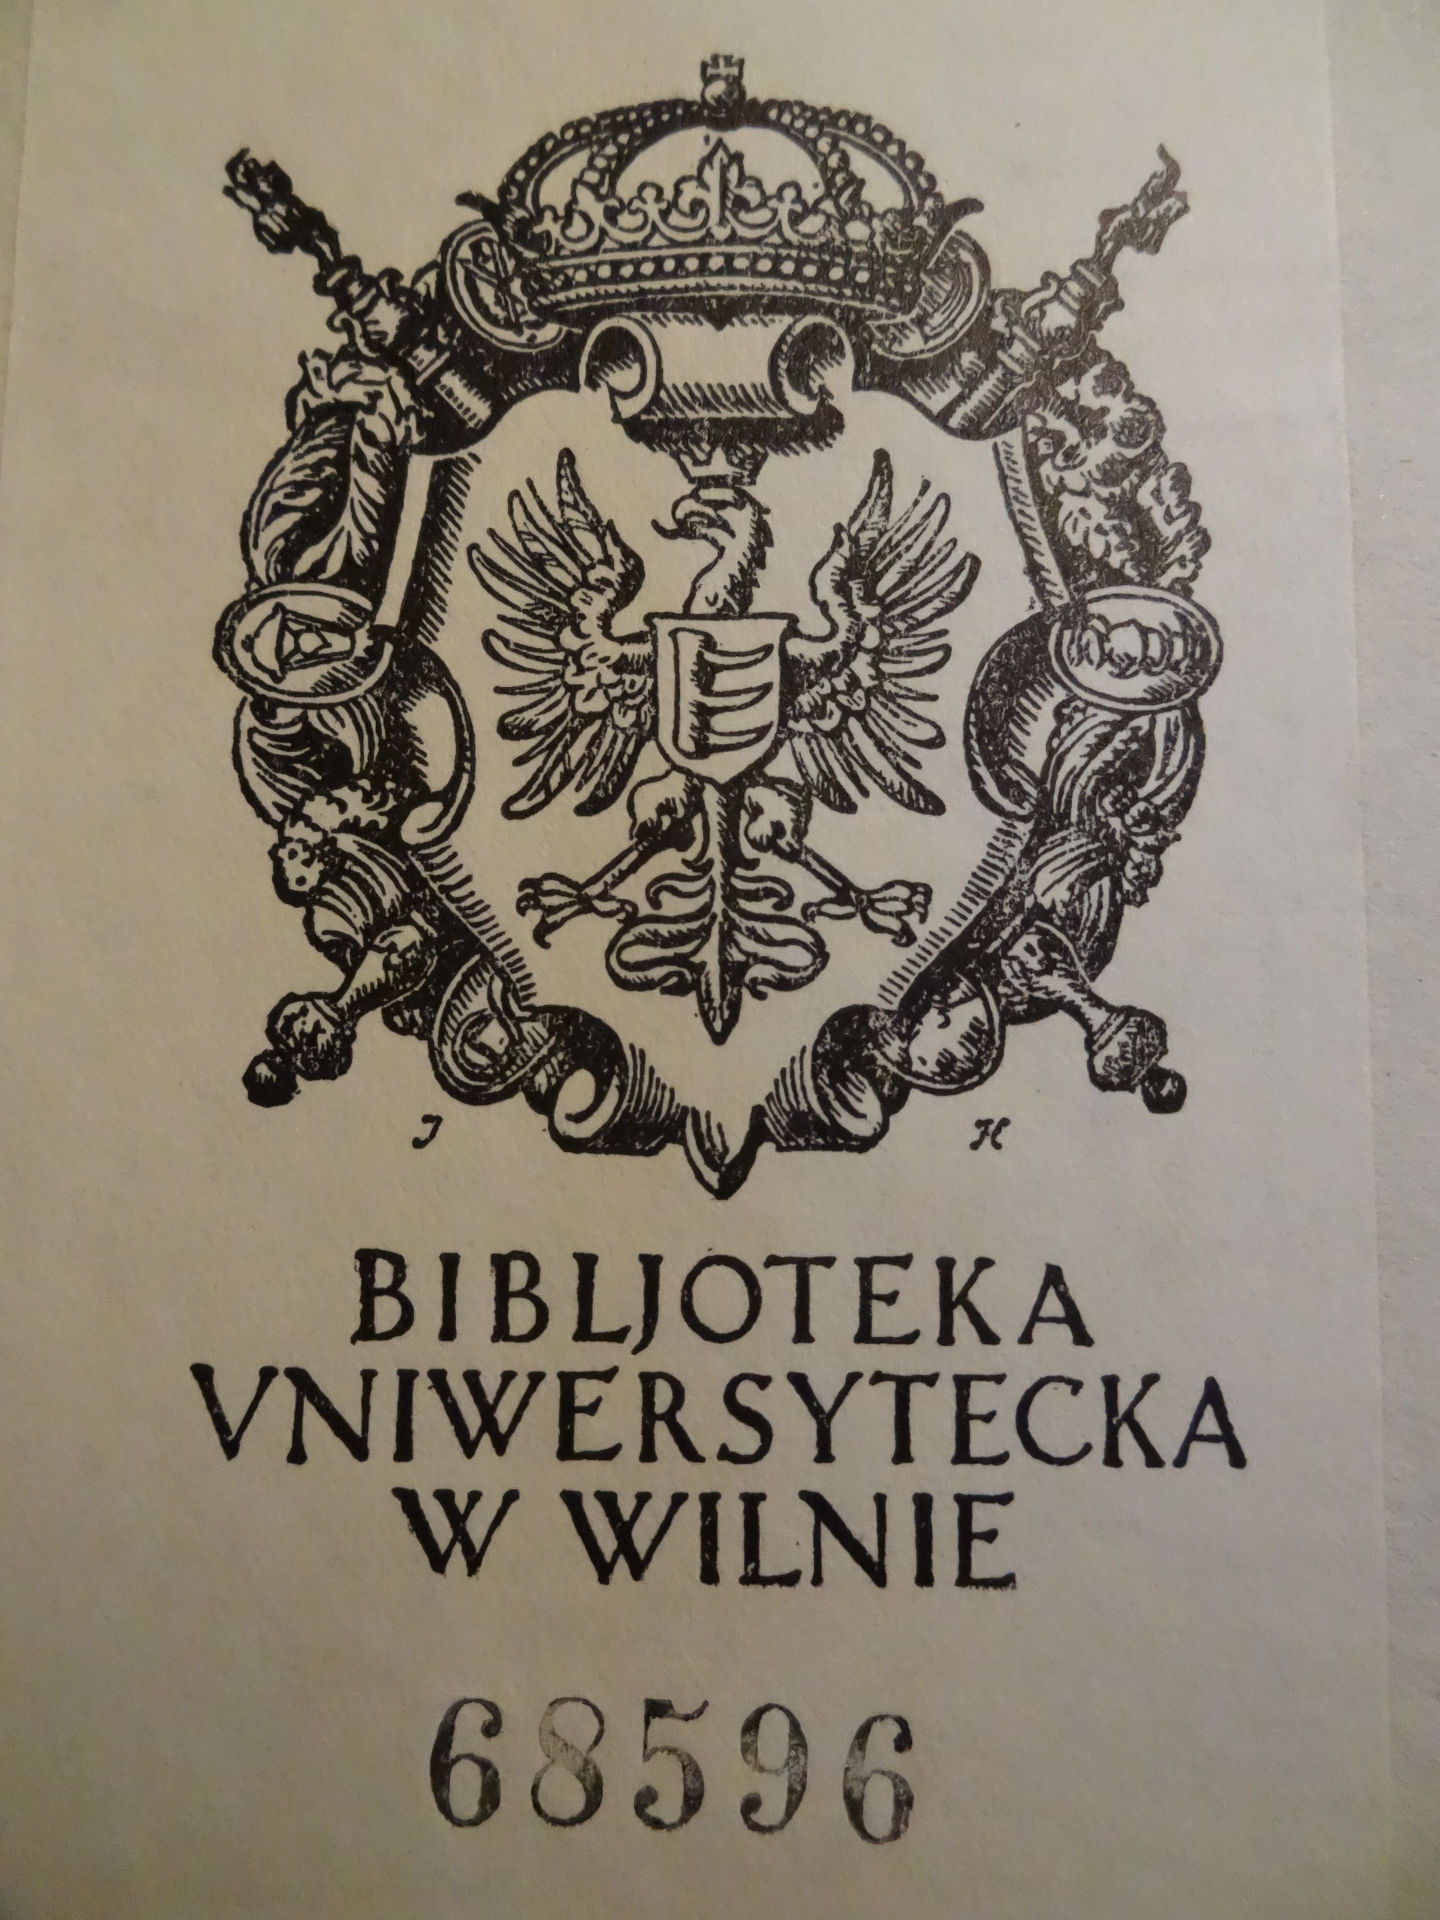 Stamp of the Vilnius University Library (about 1935)